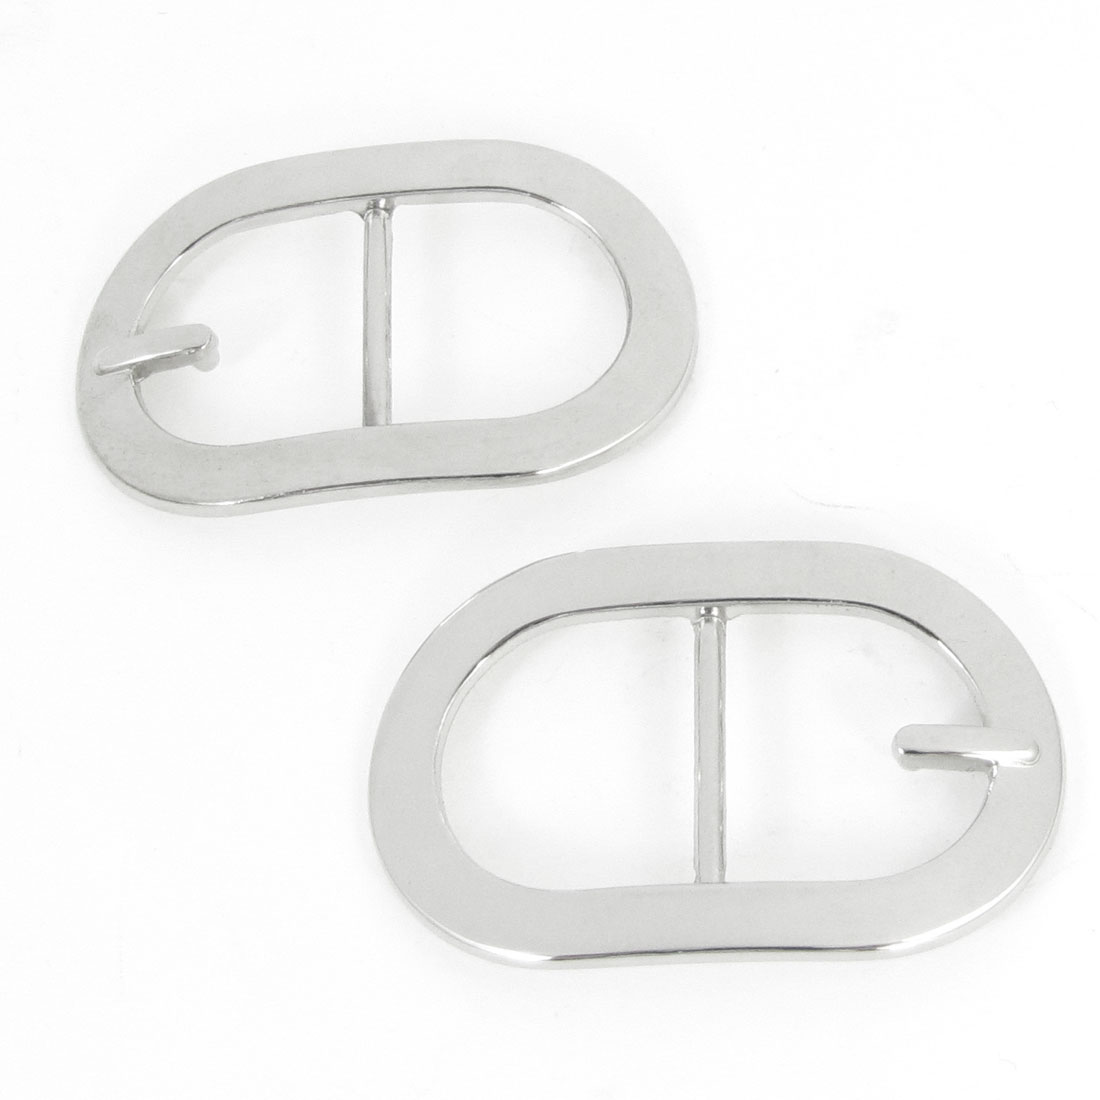 Handbag Ornament Silver Tone Rectangular Oval Shape Strap Wearing Buckle 2 Pcs